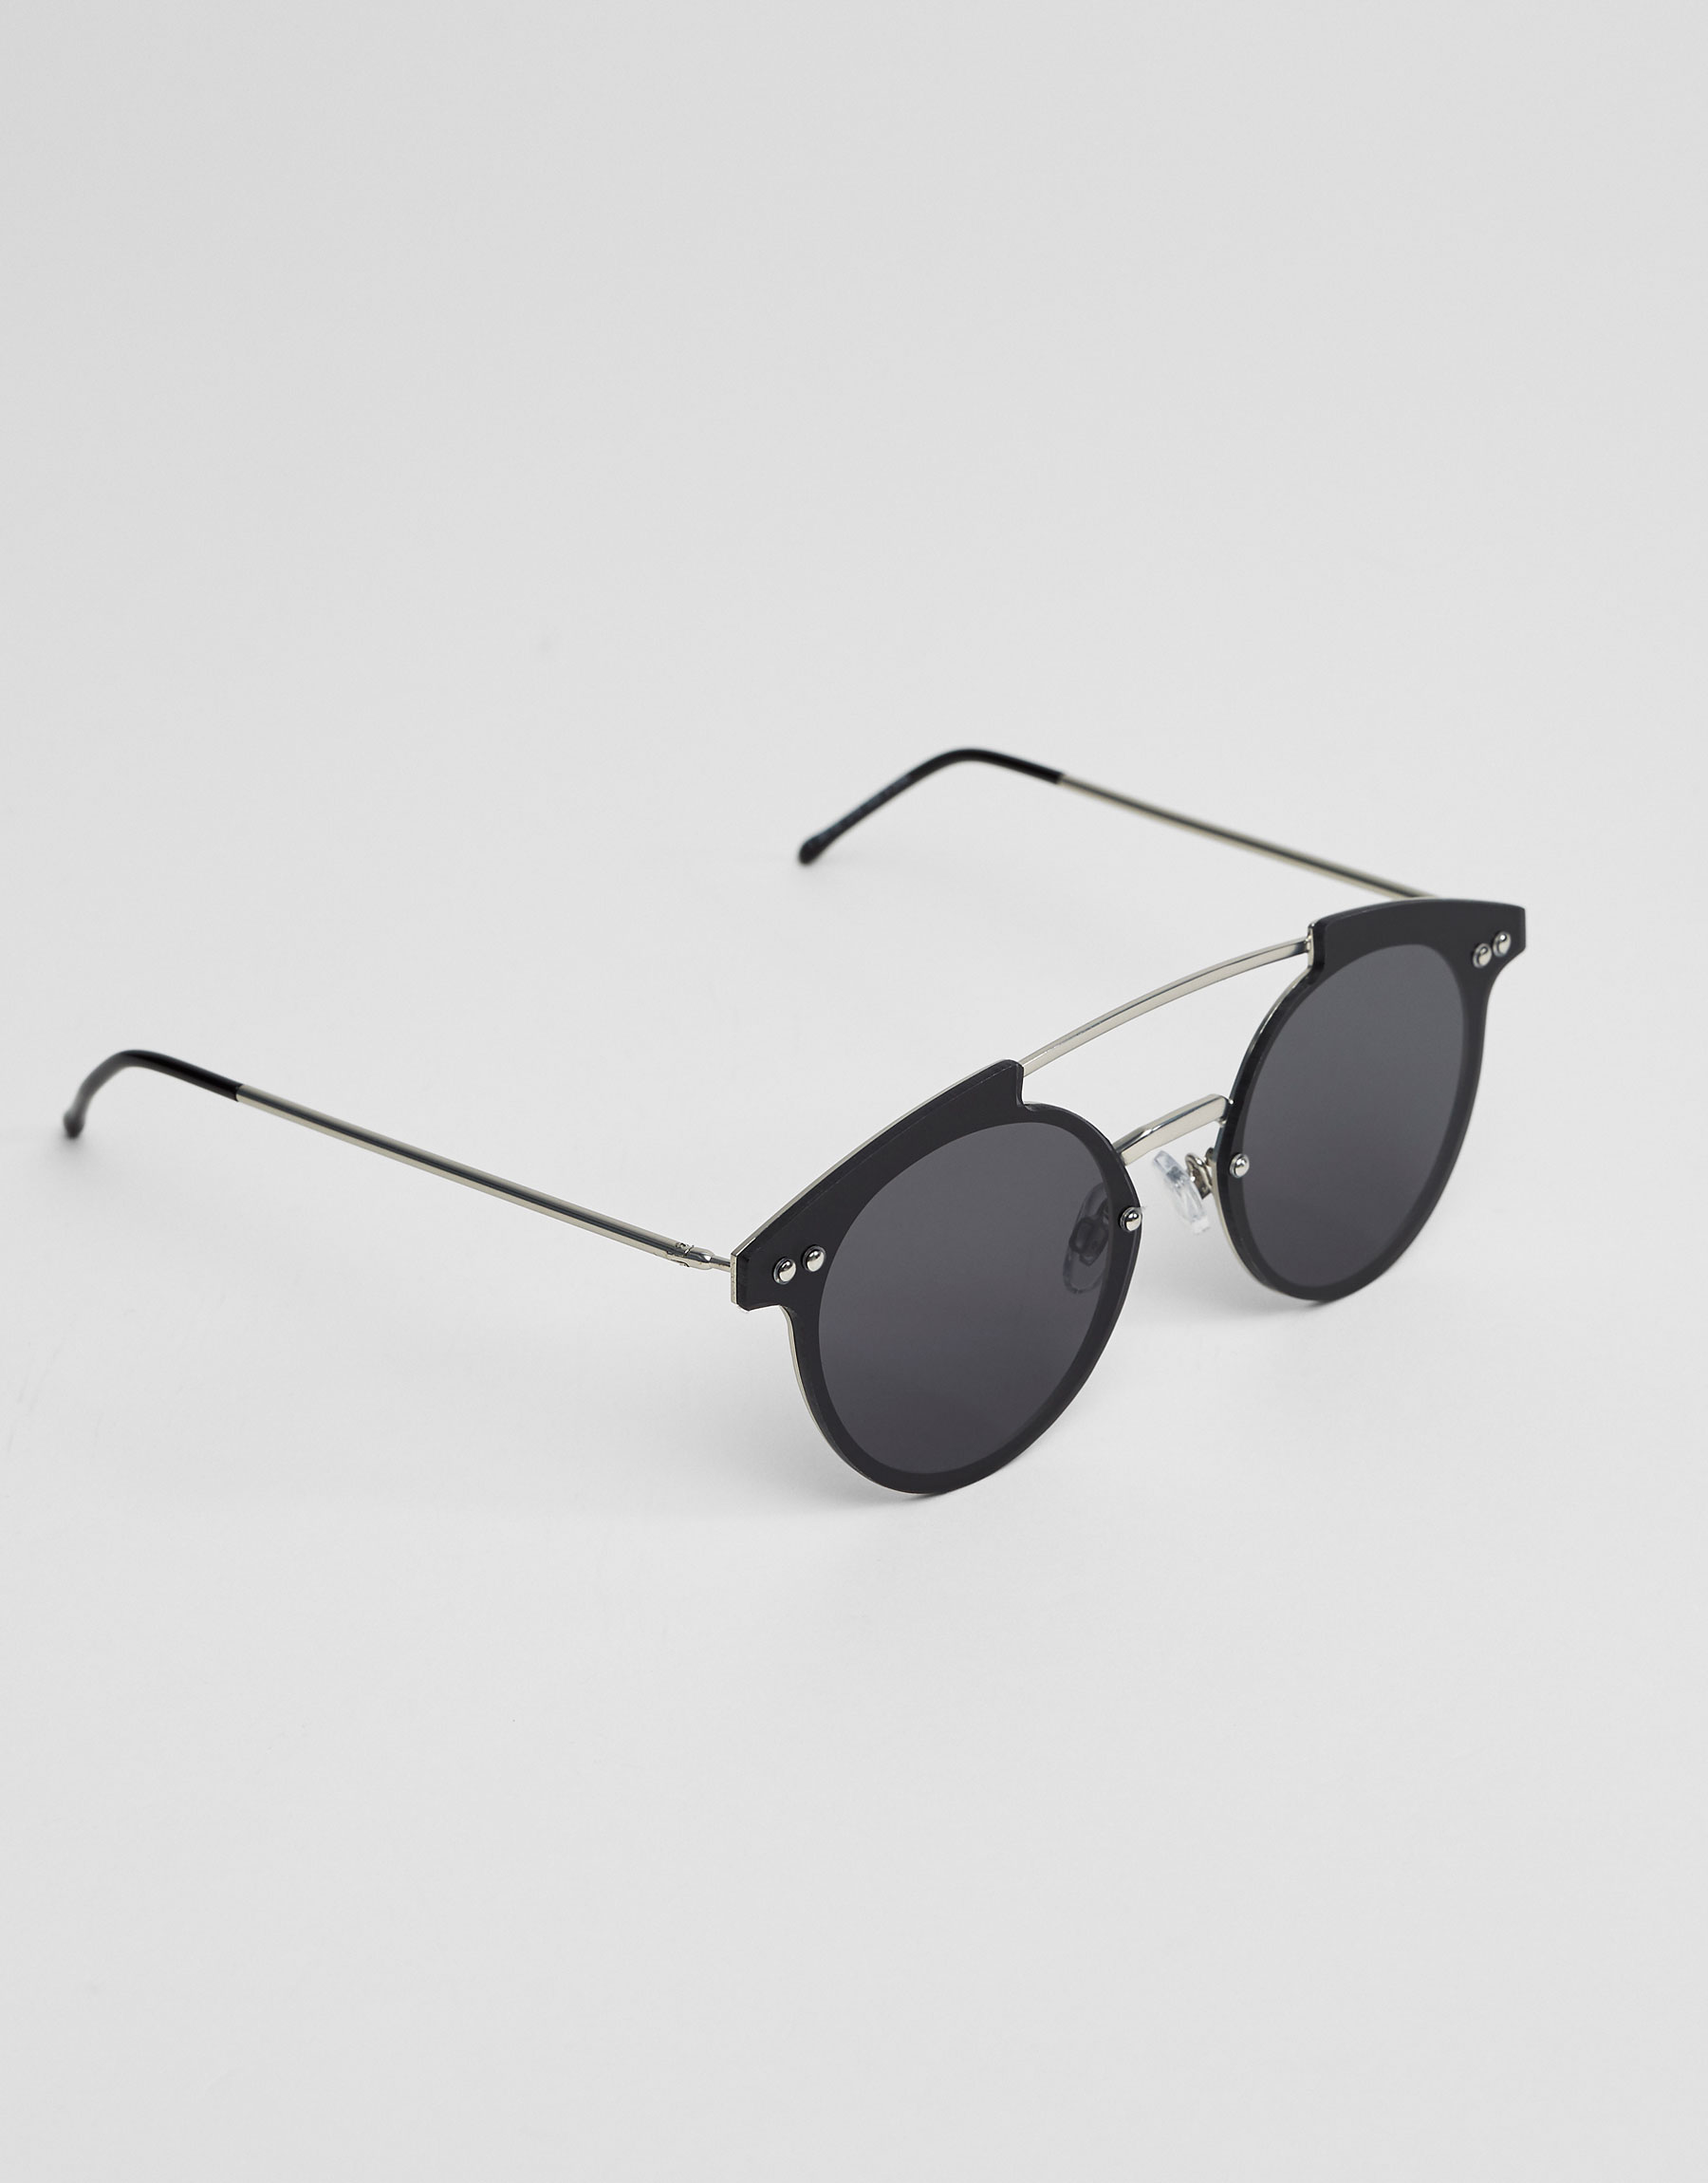 Sunglasses with metallic bridge